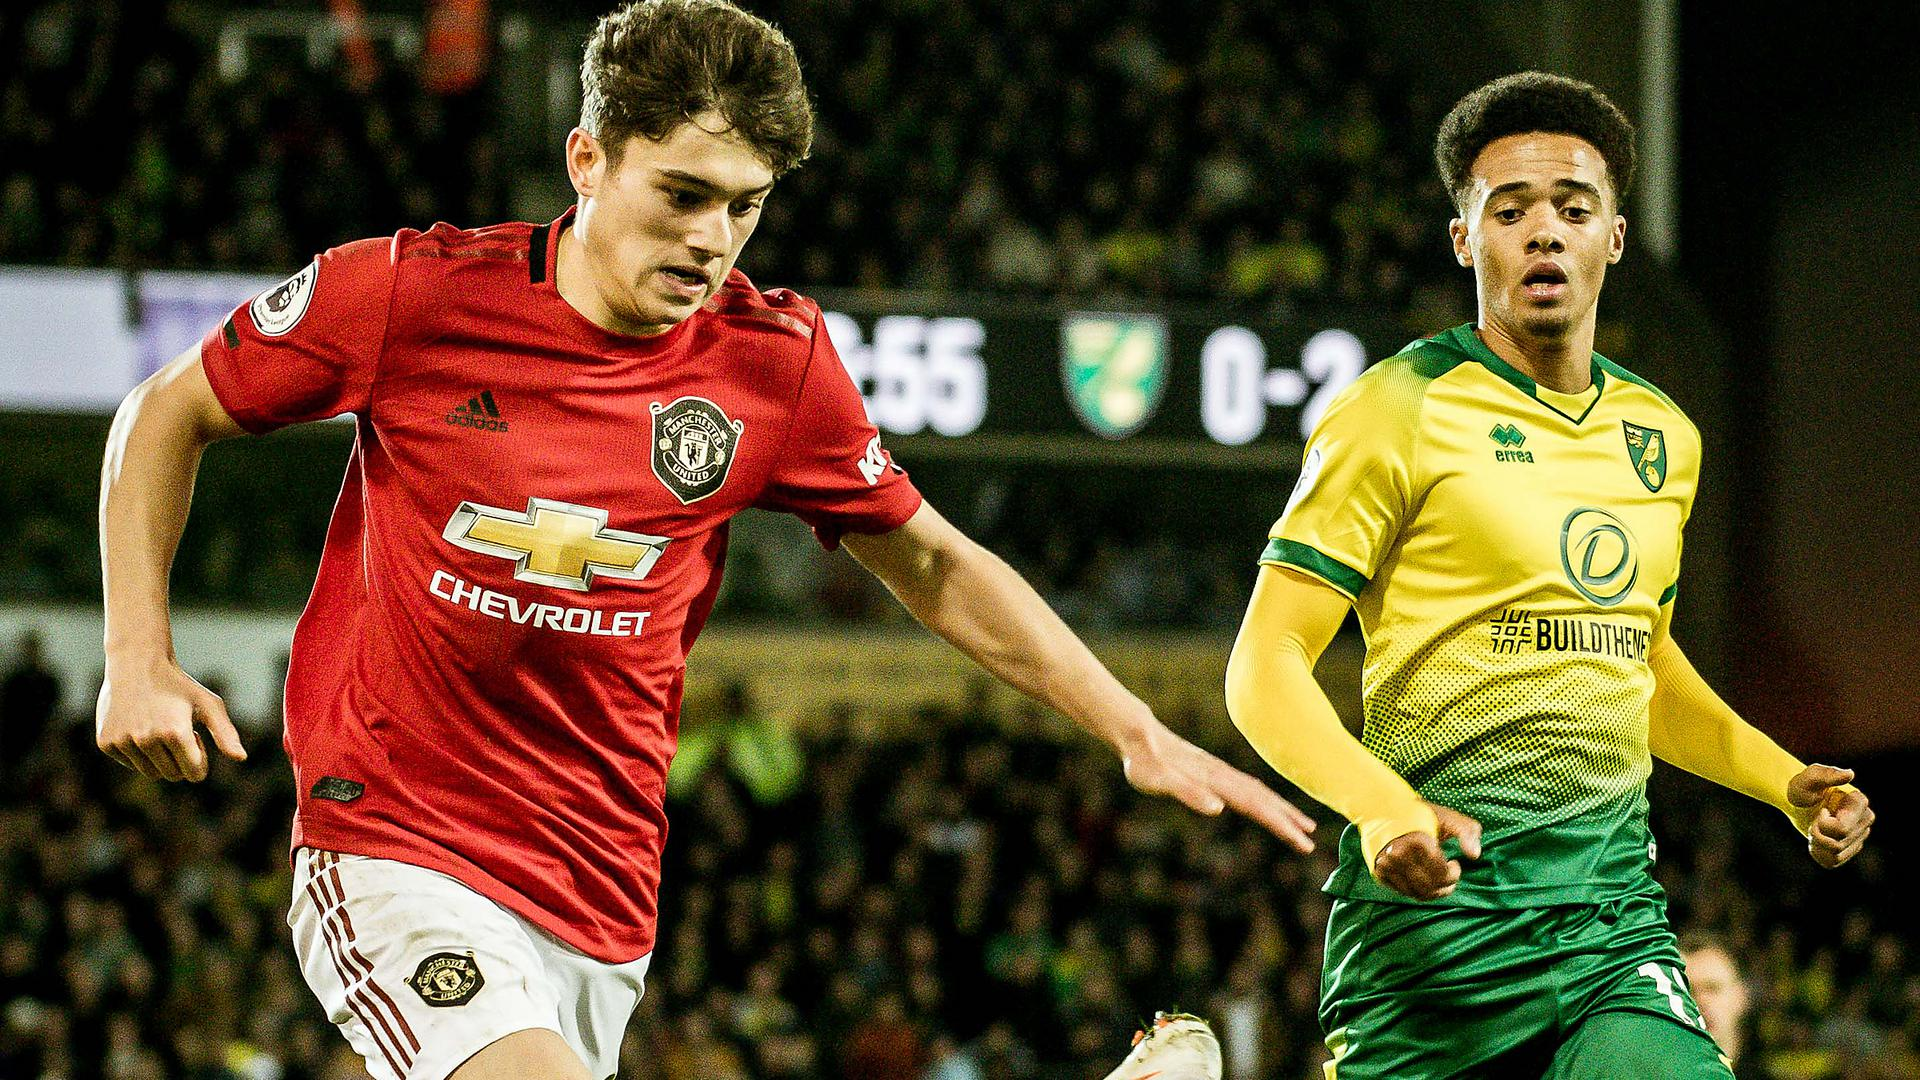 Norwich City V Man United The Essential Info Manchester United